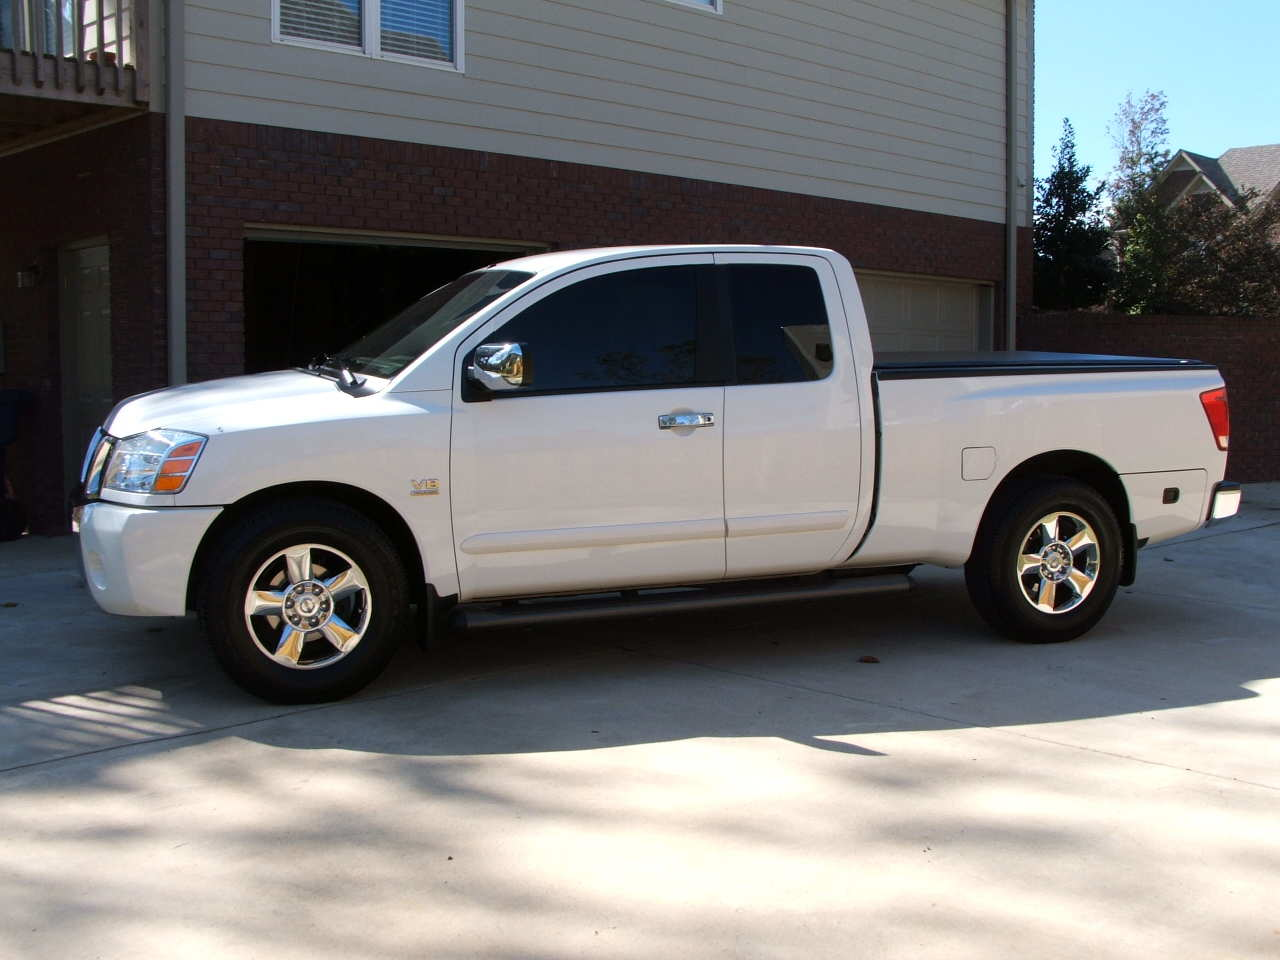 Nissan titan forums brake issues joined oct 06 2004 online status offline posts 73 vanachro Choice Image